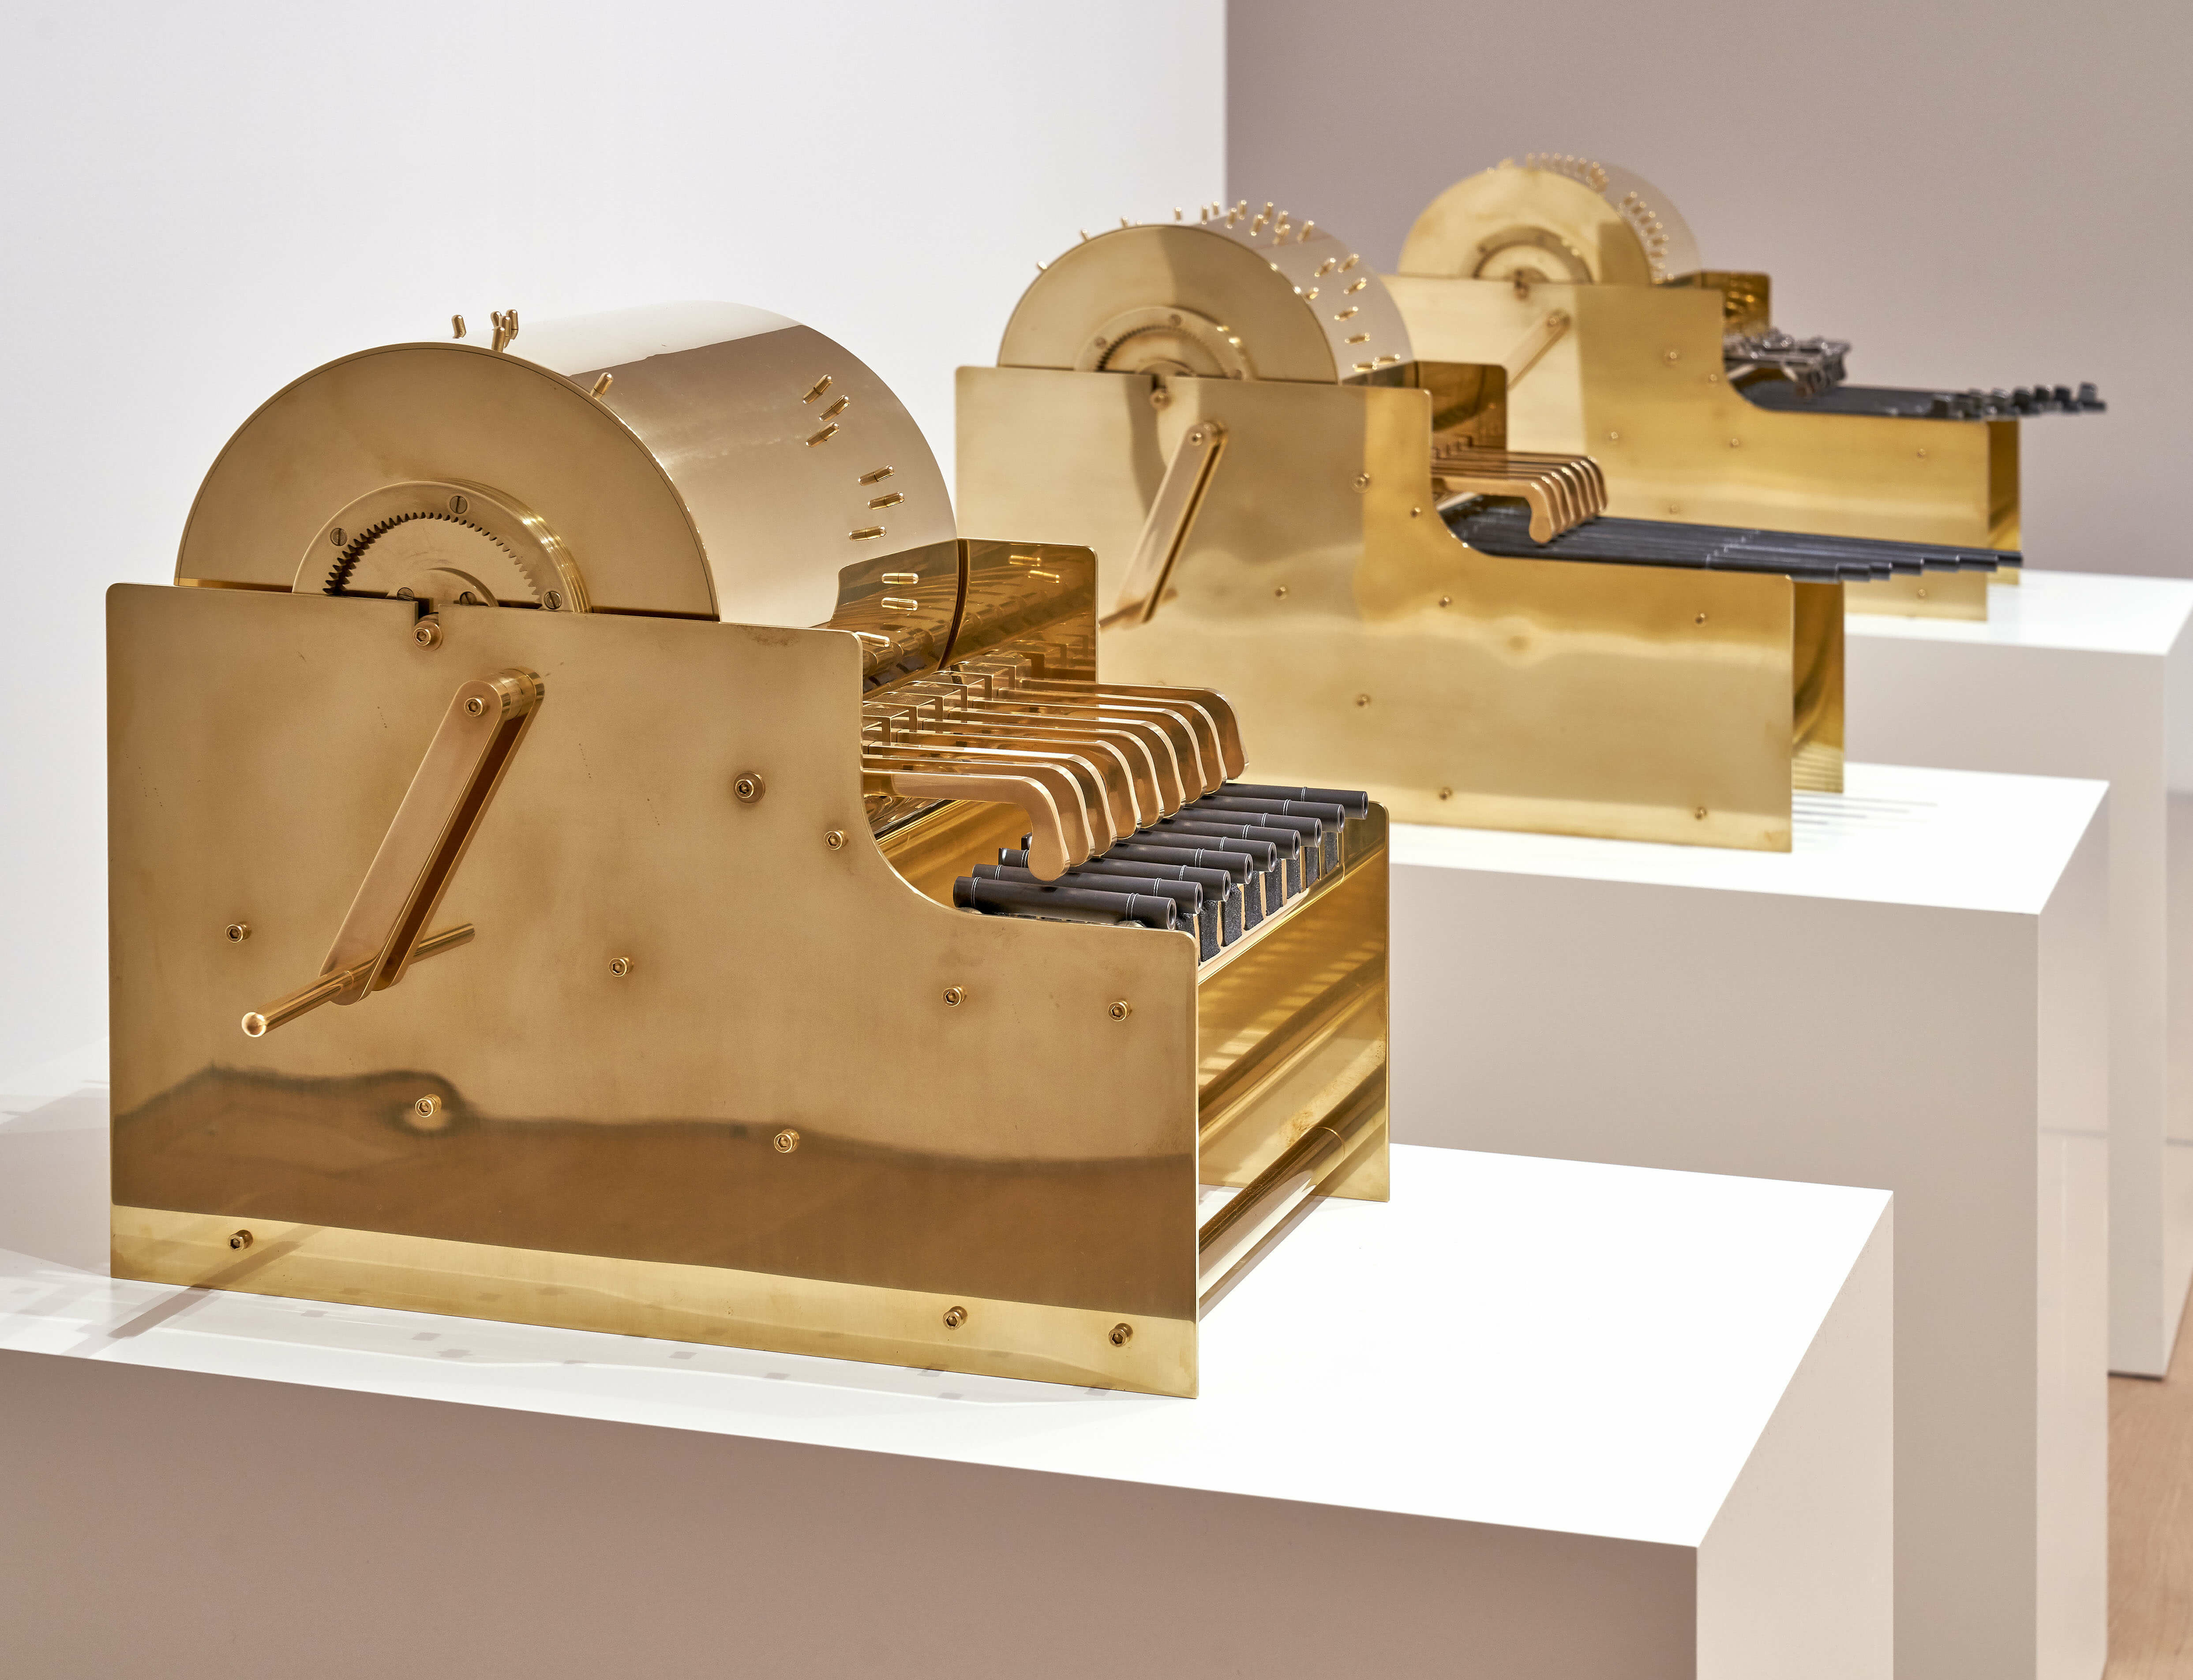 Pedro Reyes' solo exhibition 'Return to Sender' at Museum Tinguely in Basel